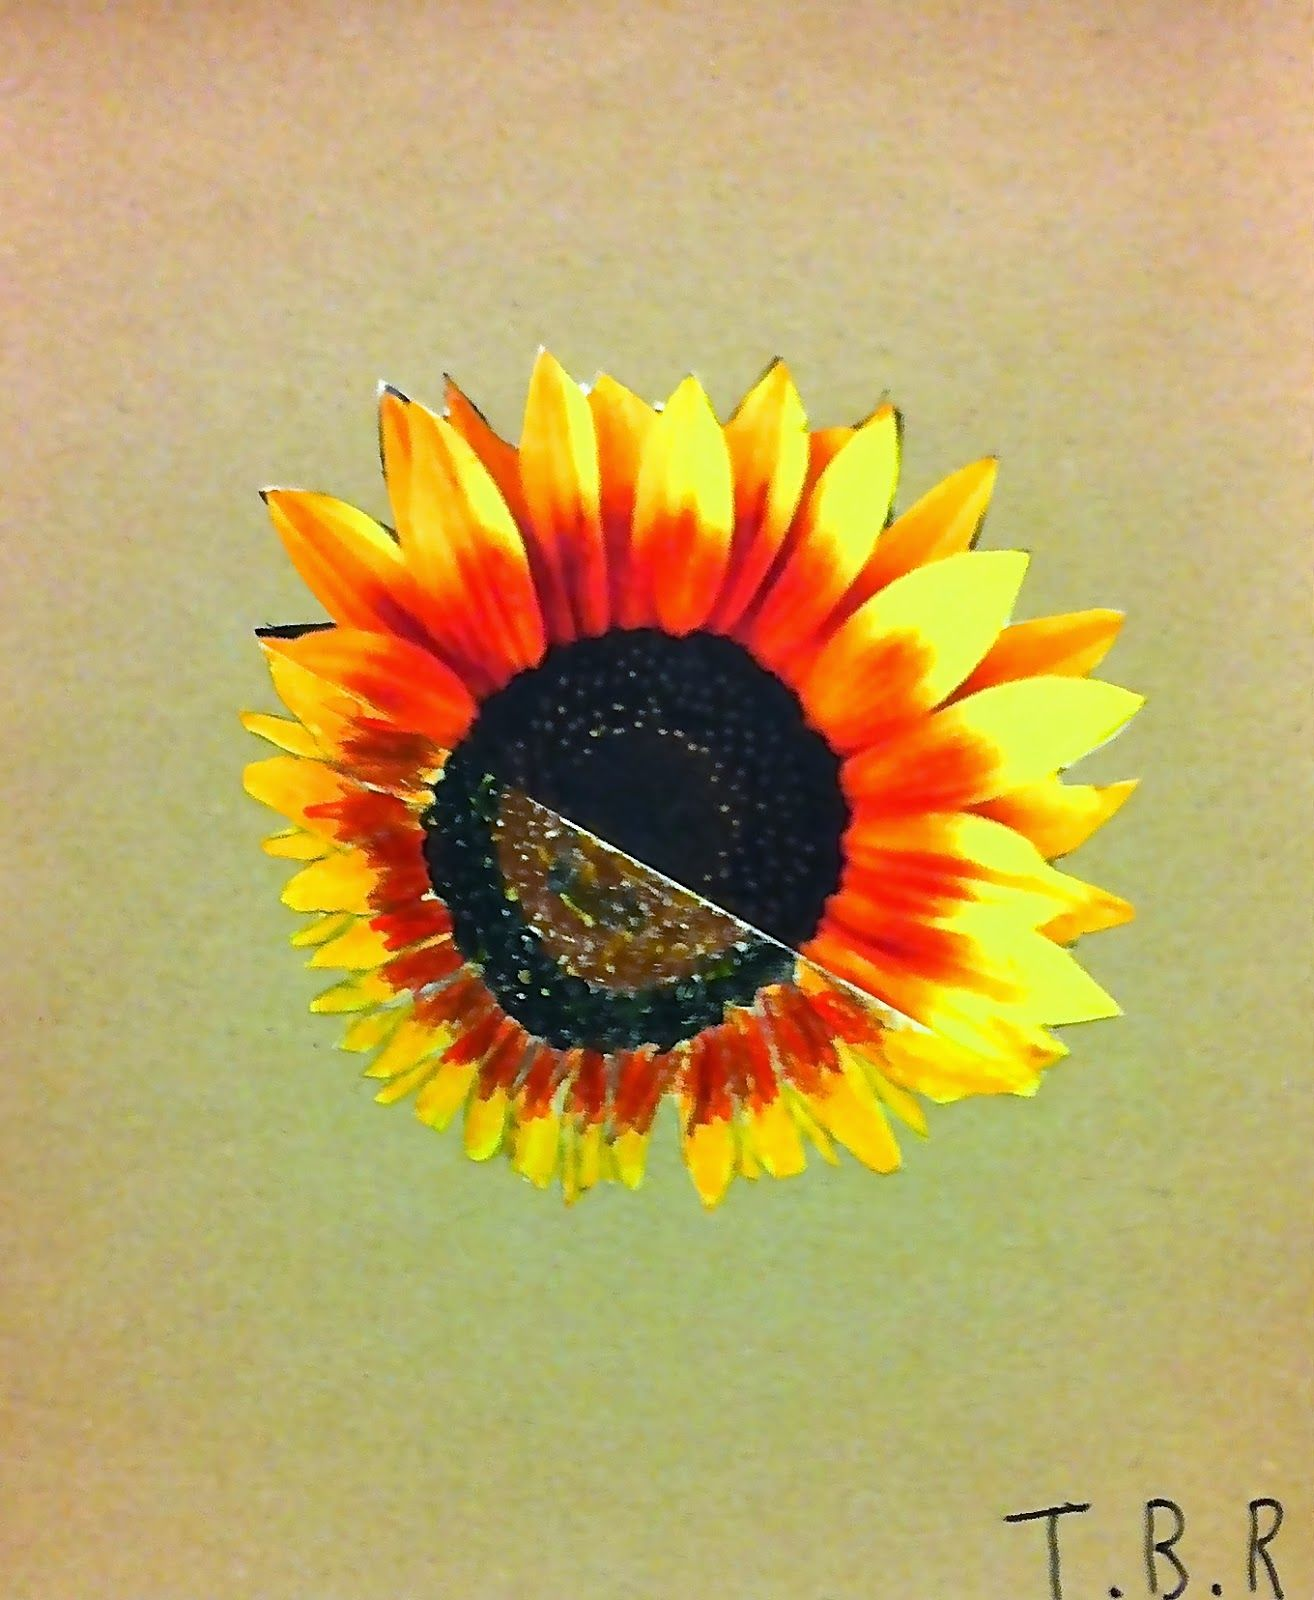 Meet The Creative Part of Me: Sunflower from half a photo to full flower - made of 4 and 5 year